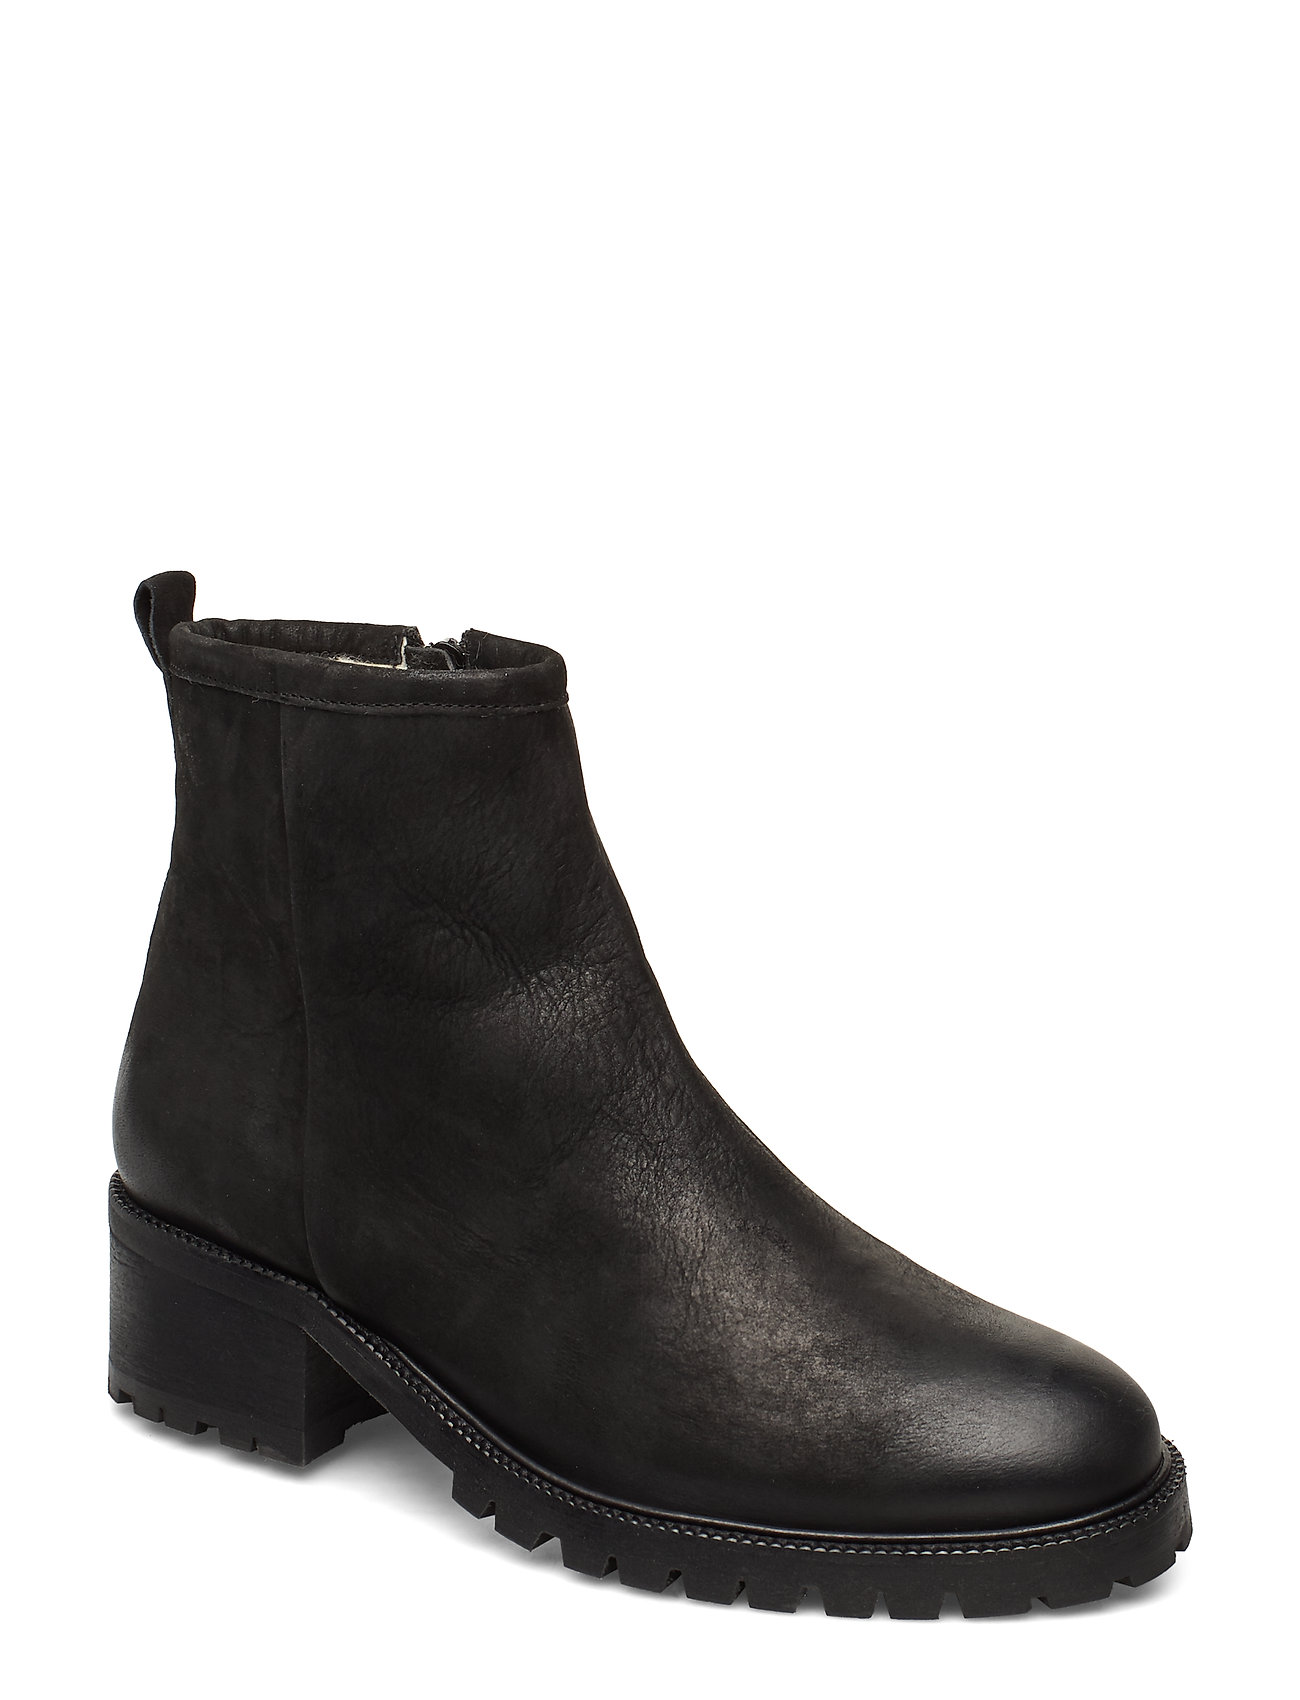 Image of Warm Lining 83731 Shoes Boots Ankle Boots Ankle Boot - Heel Sort Billi Bi (3461976139)